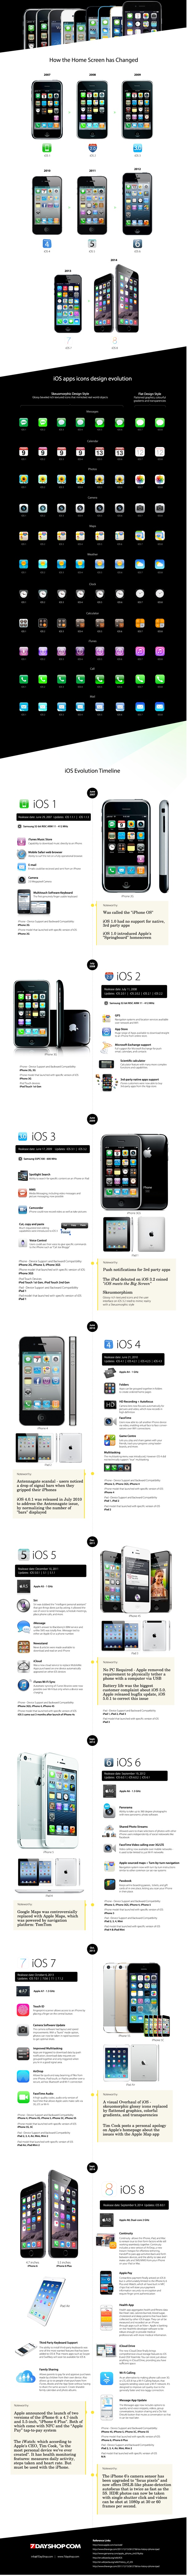 ios_evolution_2